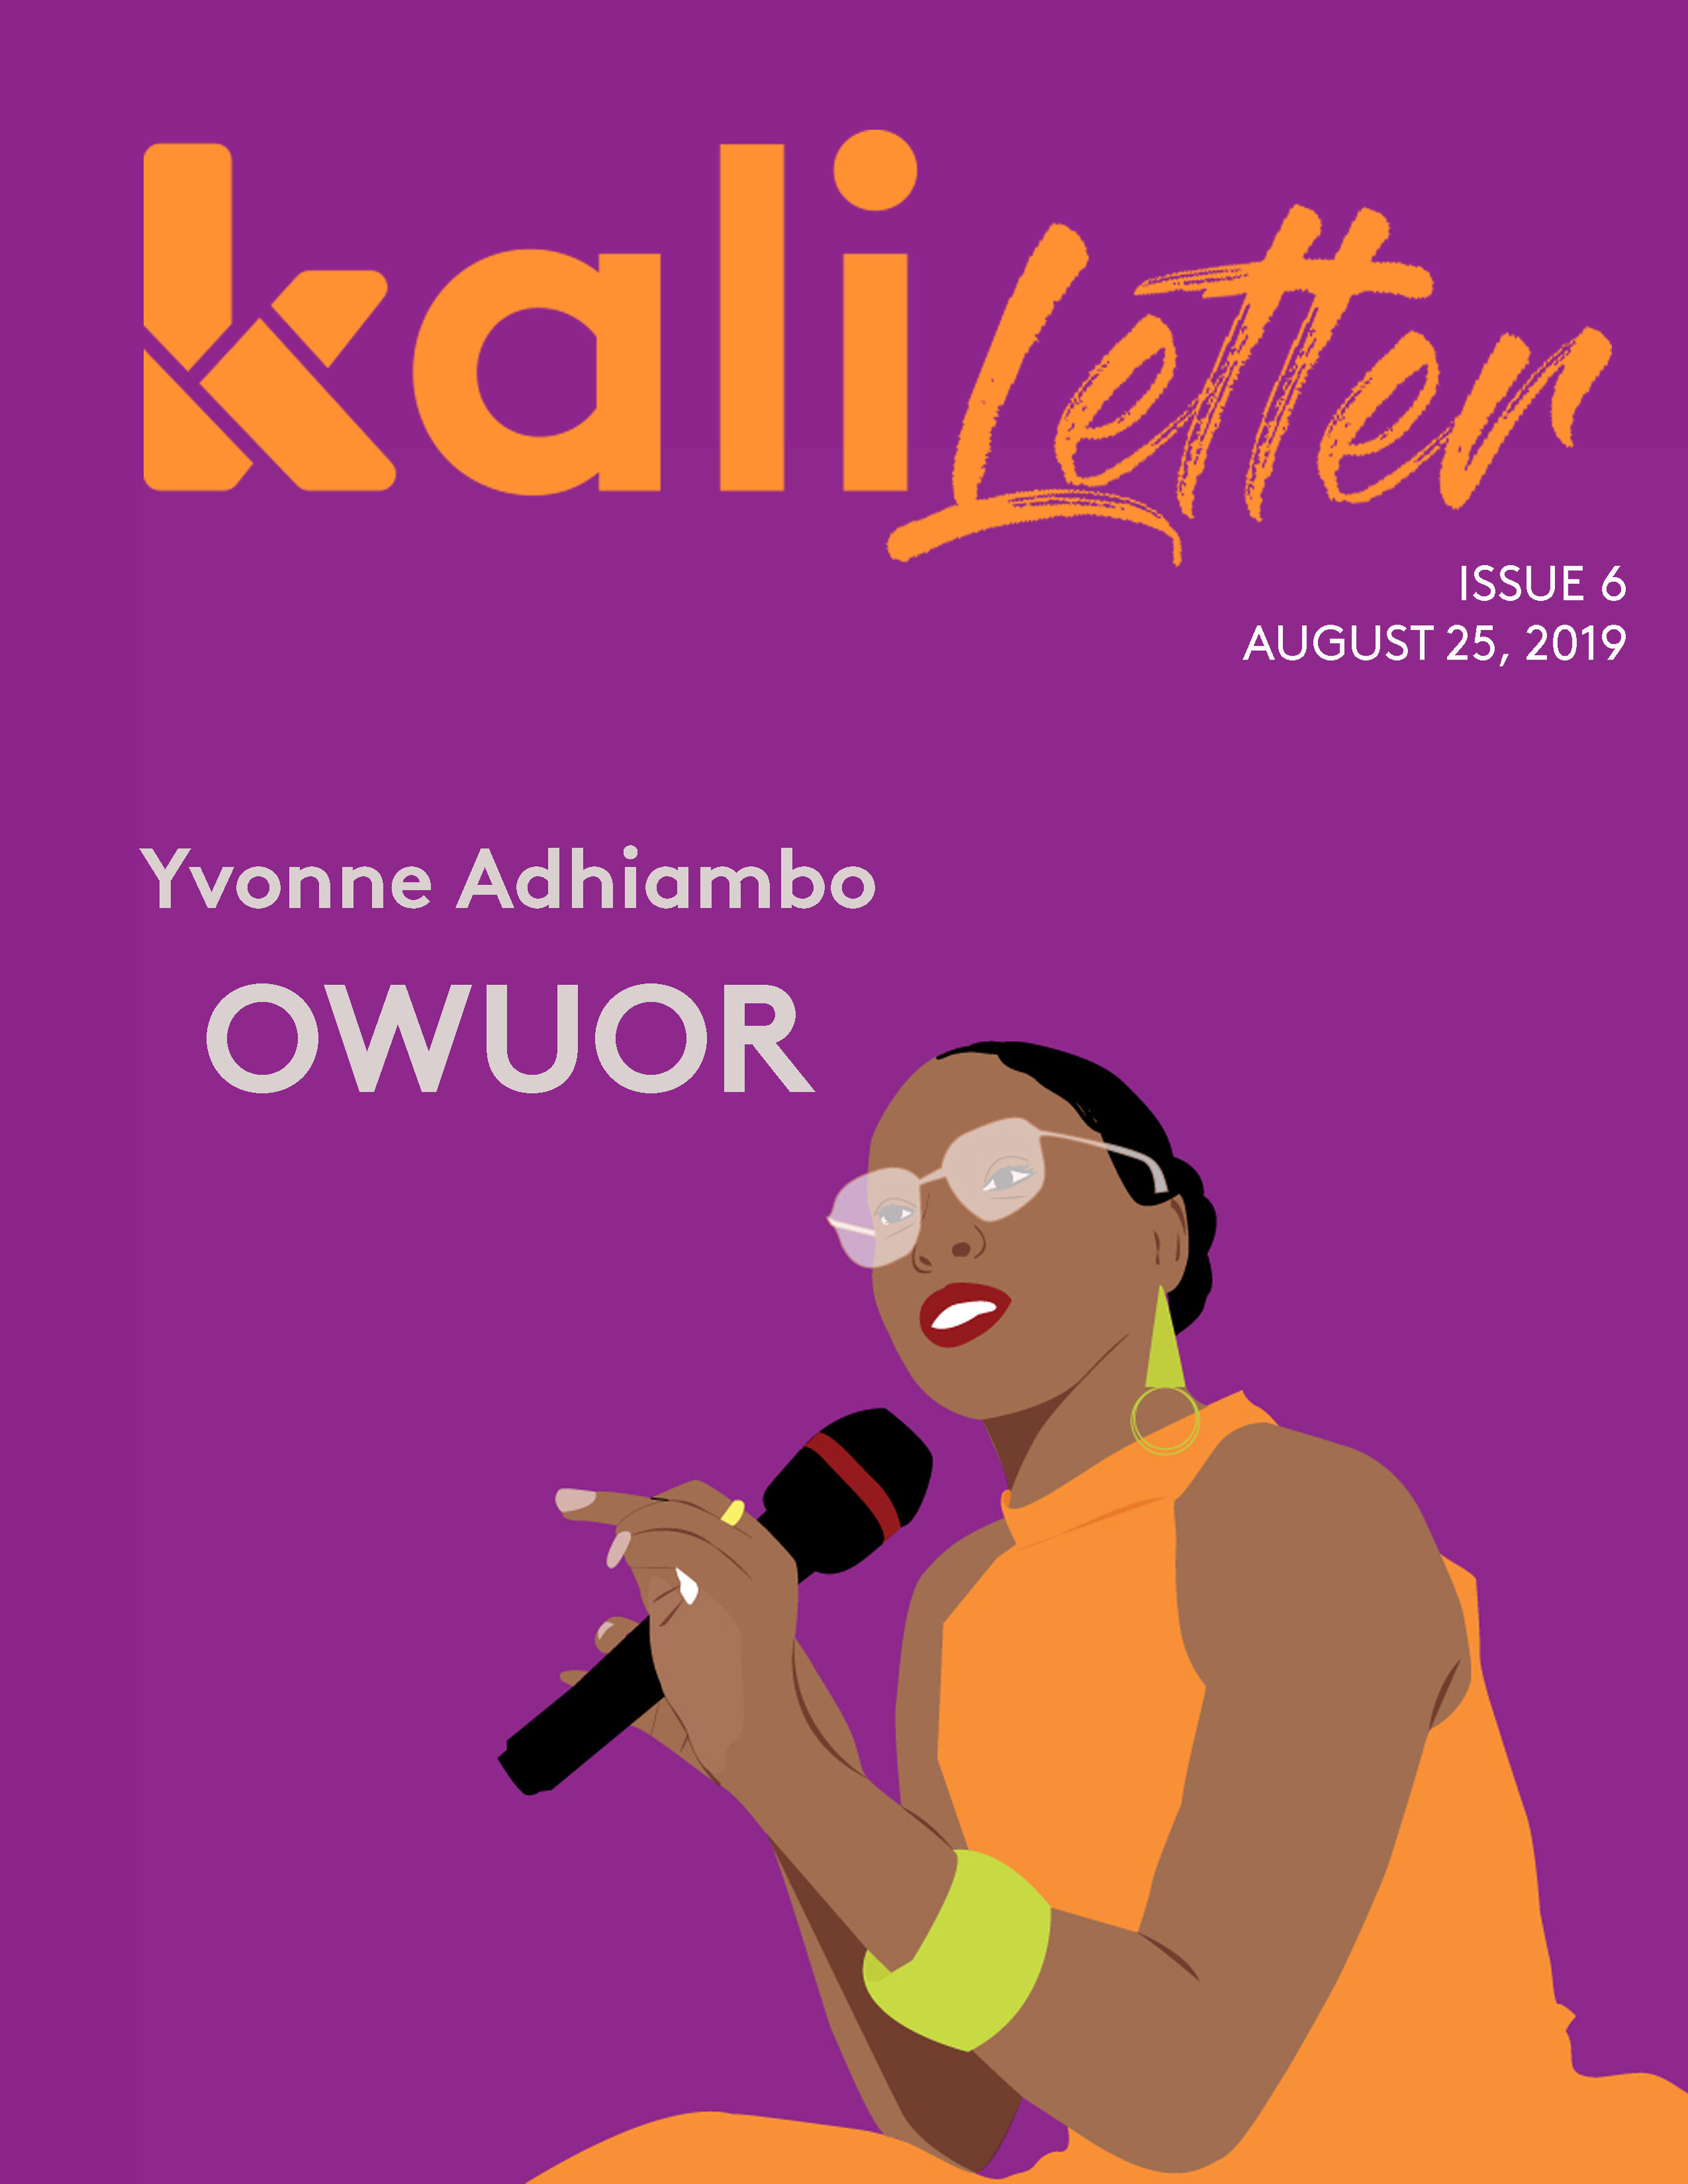 "YVONNE ADHIAMBO OWUOR     Issue #:  6  Release Date:   August 25, 2019    Yvonne Adhiambo Owuor has captured the imaginations of readers worldwide with her prolific writing in works such as ""Dust"" and ""The Dragonfly Sea."" In this issue, we excerpt her conversation with Nanjala Nyabola for the KALI LIVE! podcast."